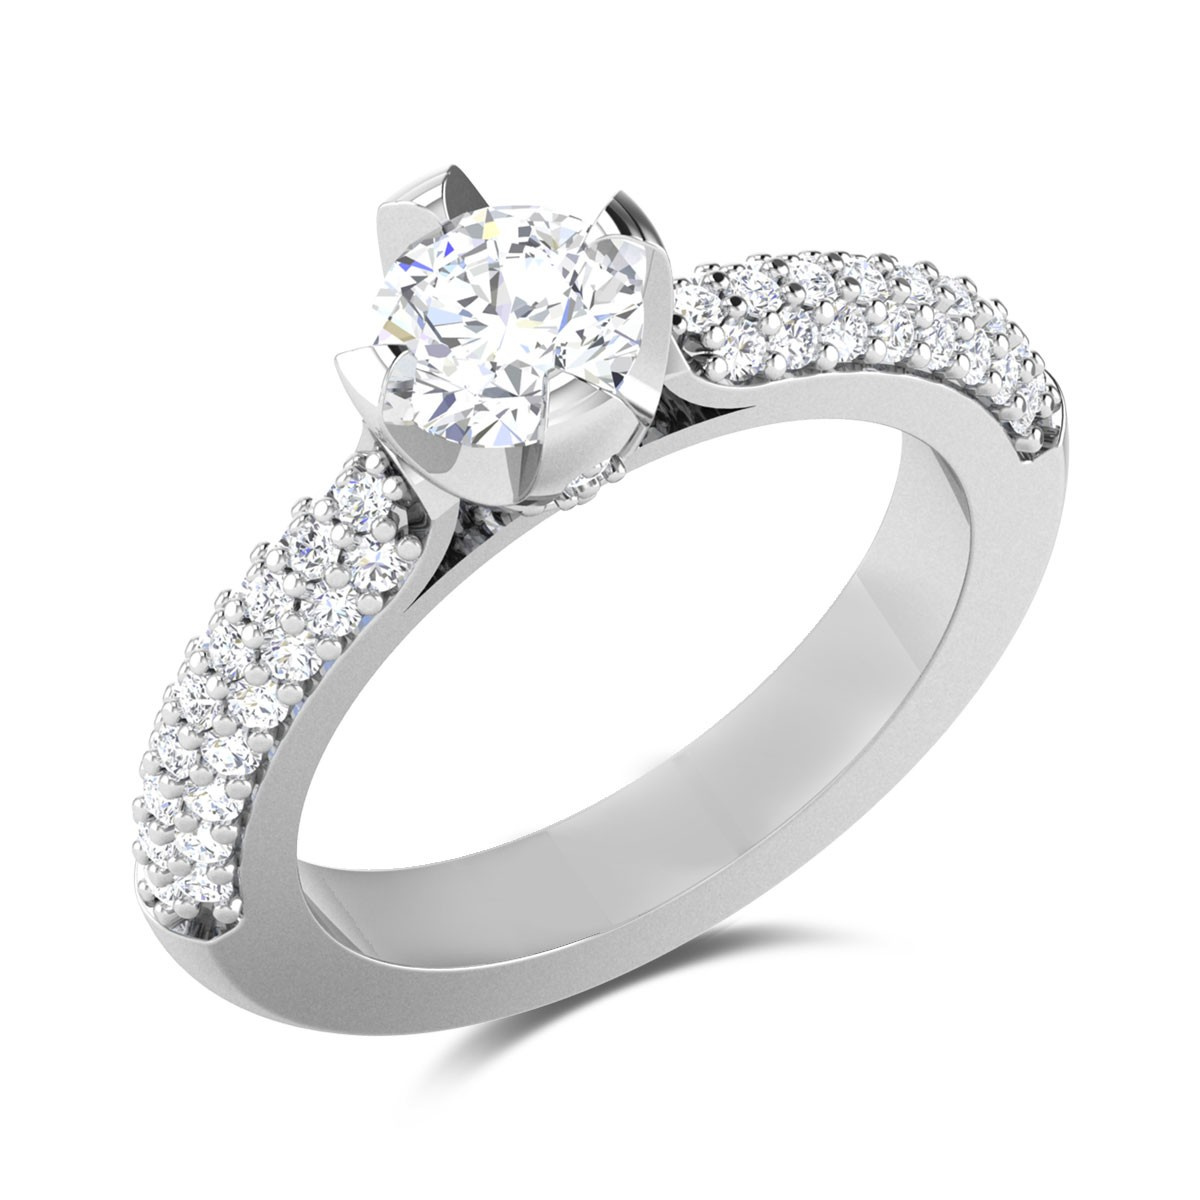 Chahan 4 Prong Solitaire Ring